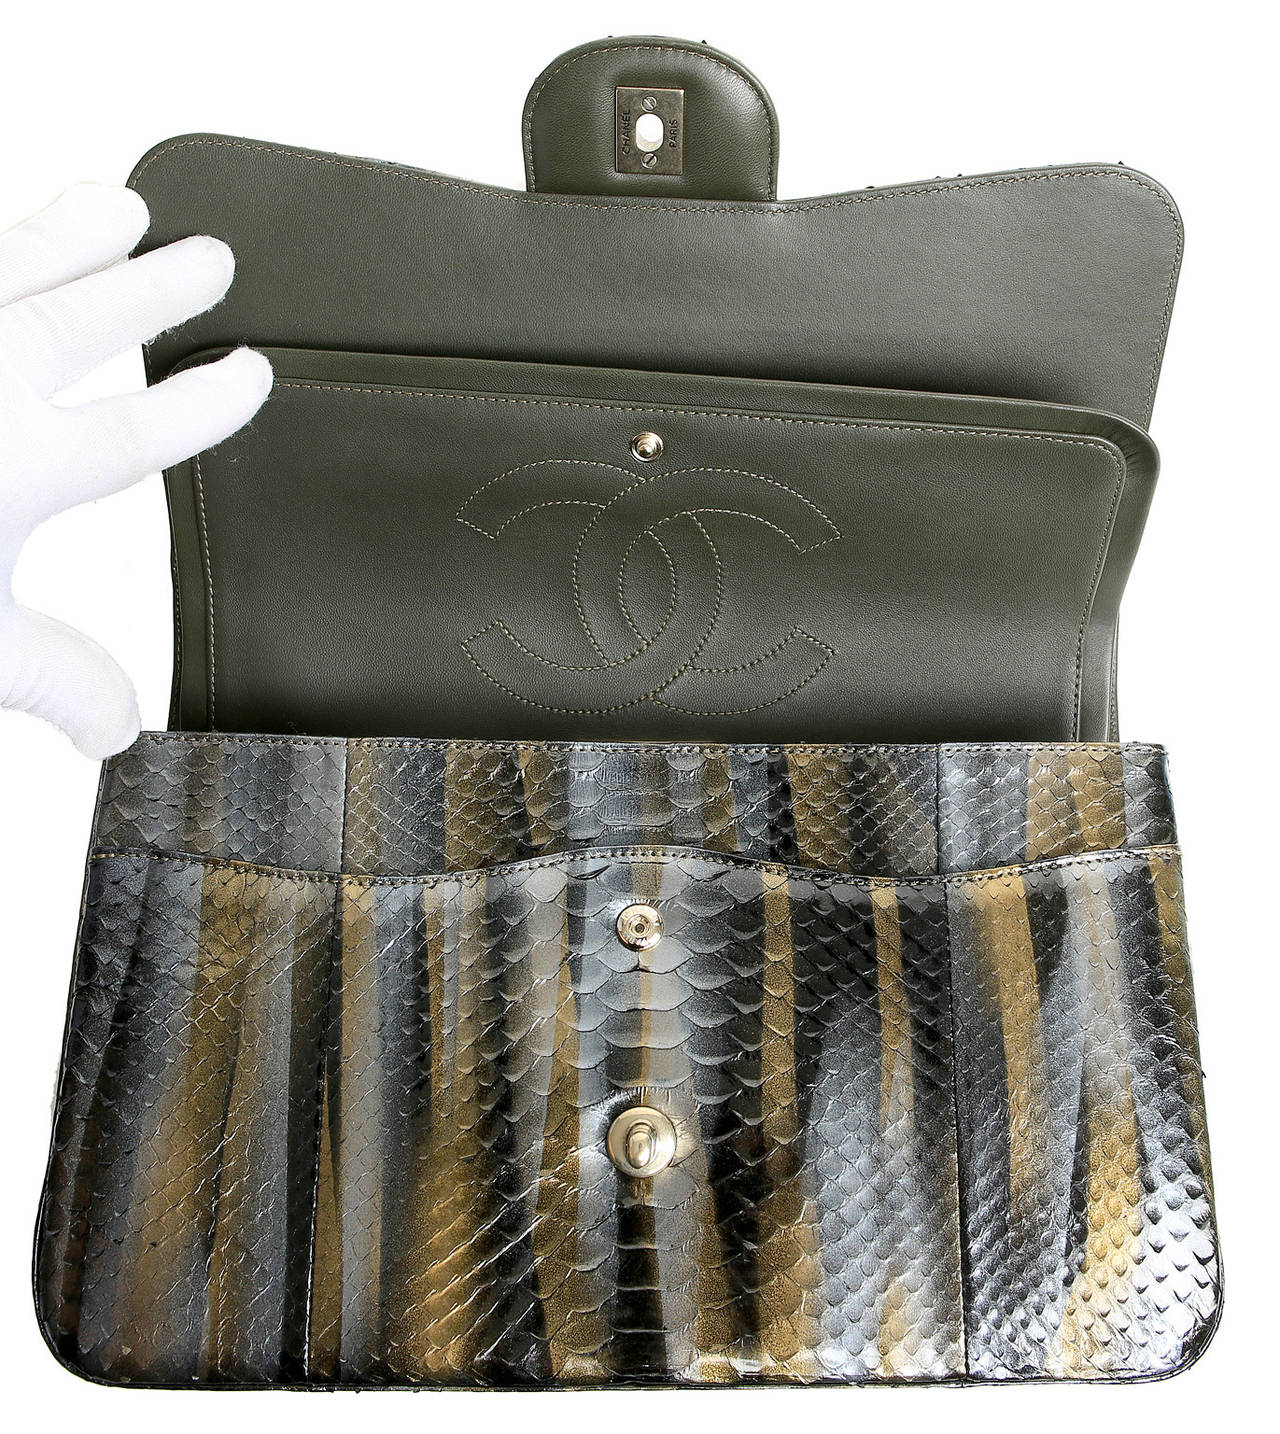 Chanel Jumbo Classic Metallic Python- Double Flap For Sale 1